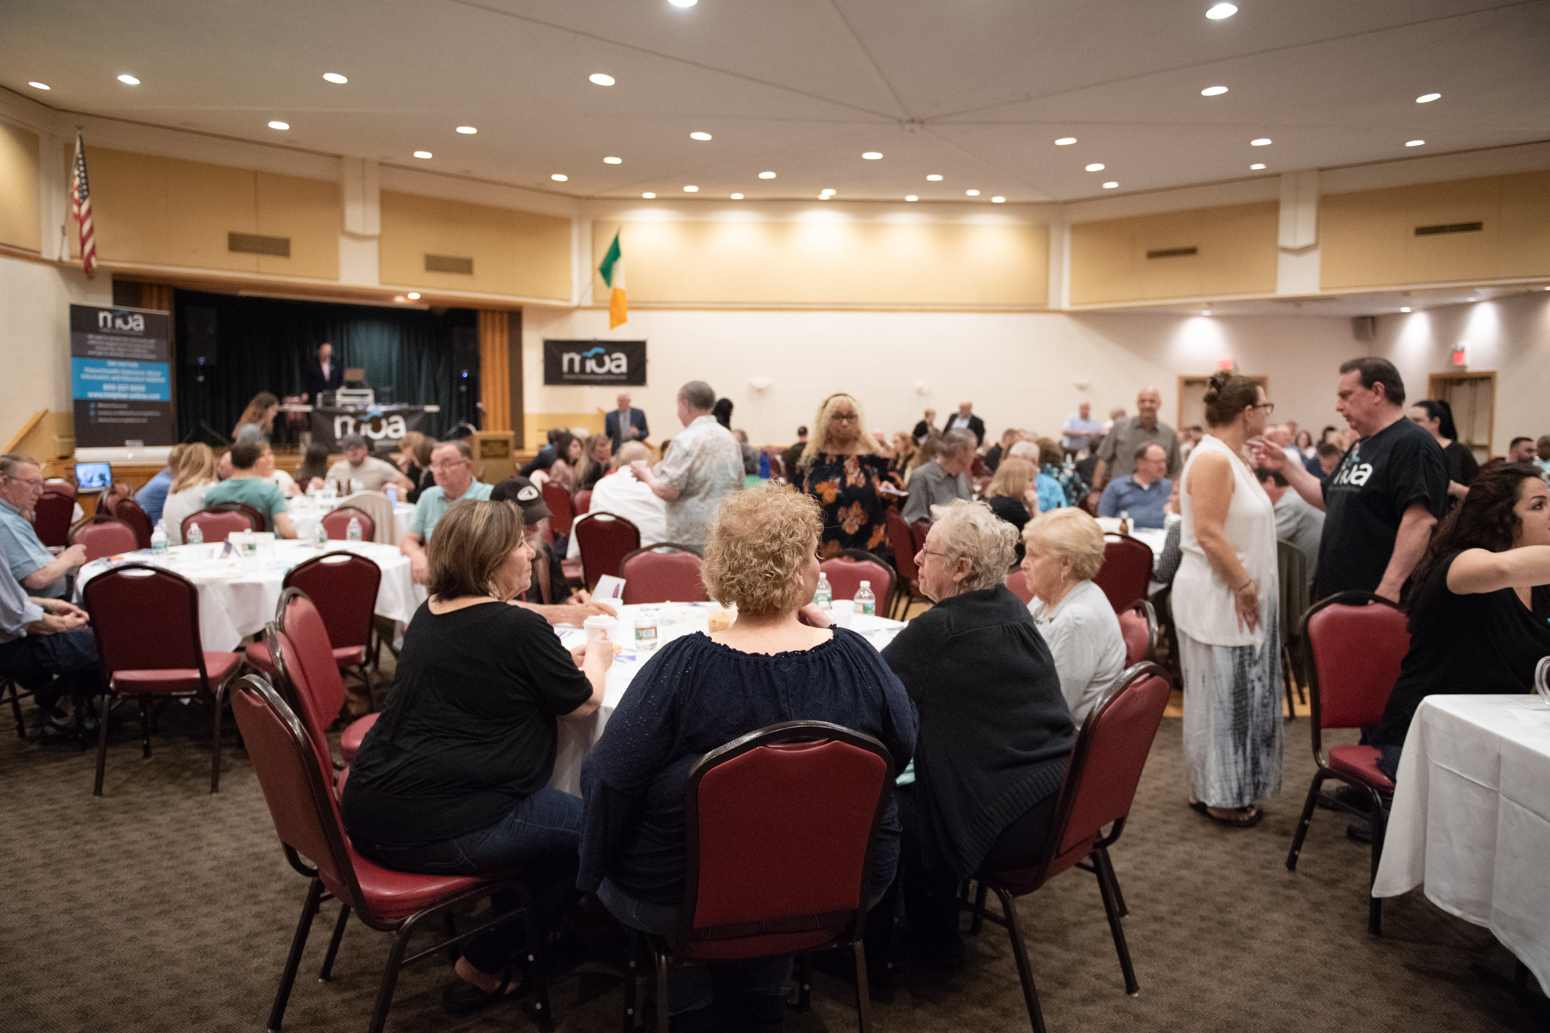 2nd-annual-togetherwecan-moa-comedy-night-fundraiser_41891972171_o.jpg